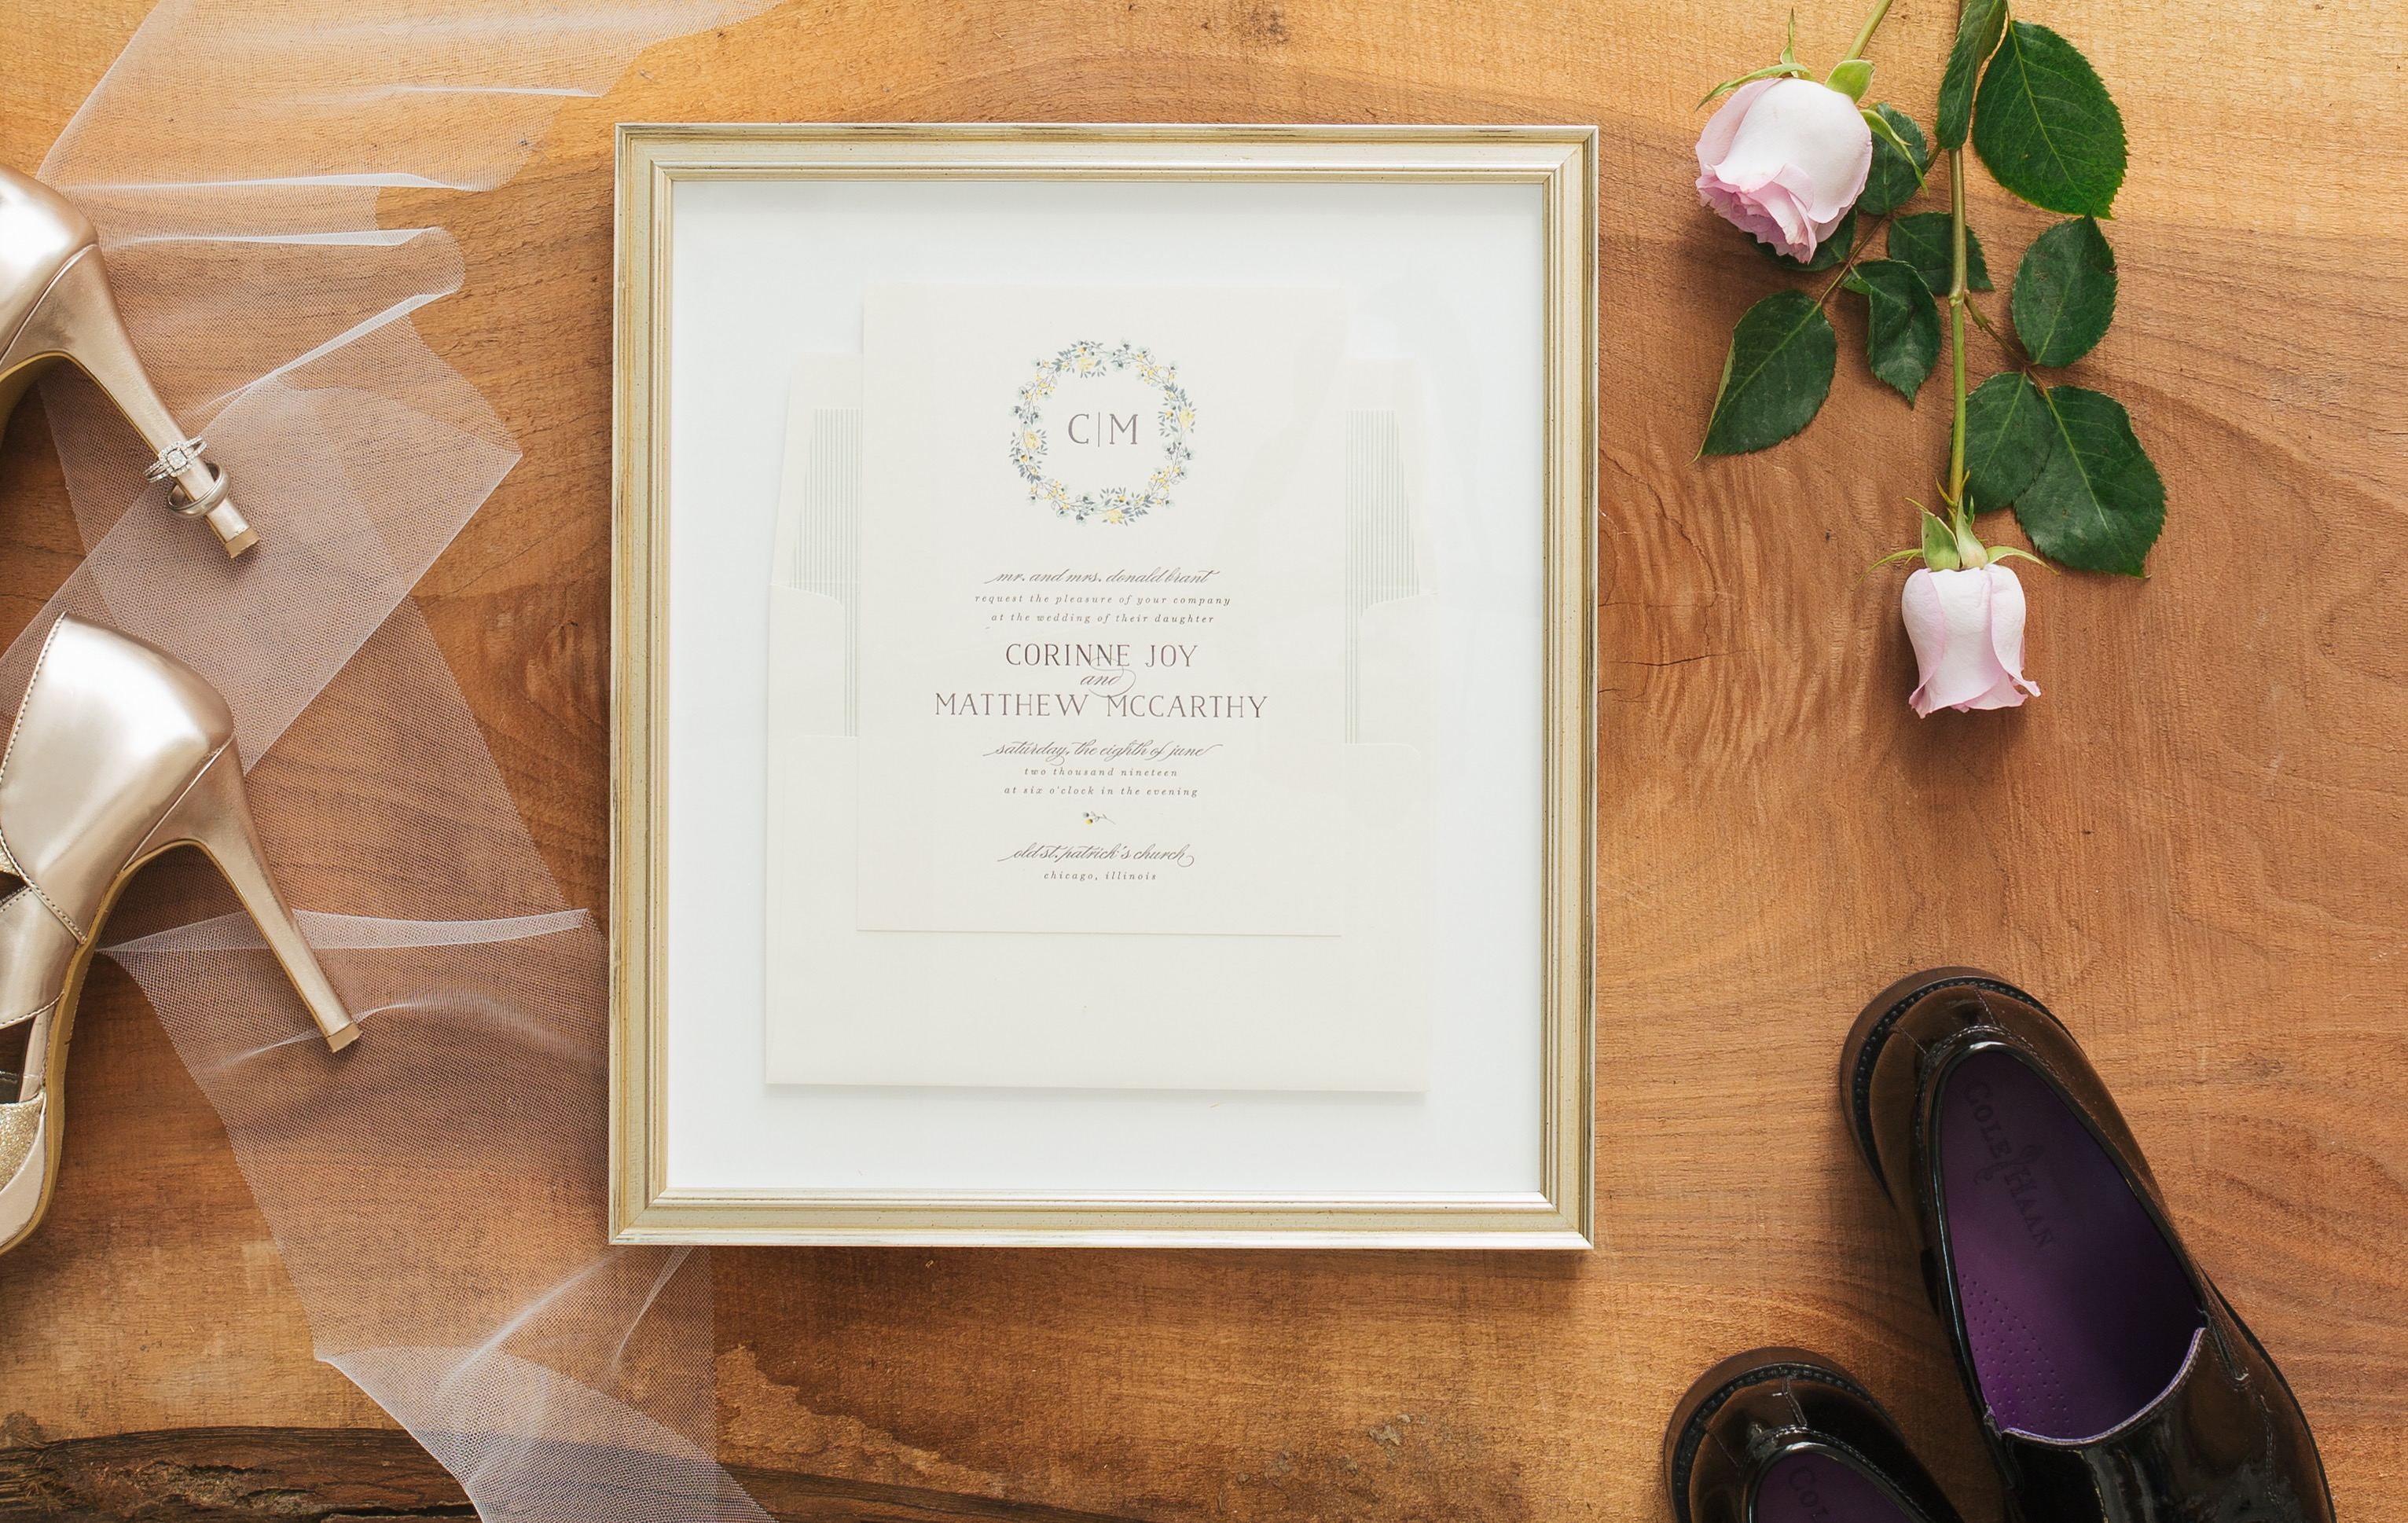 How To: Frame a Wedding Invitation